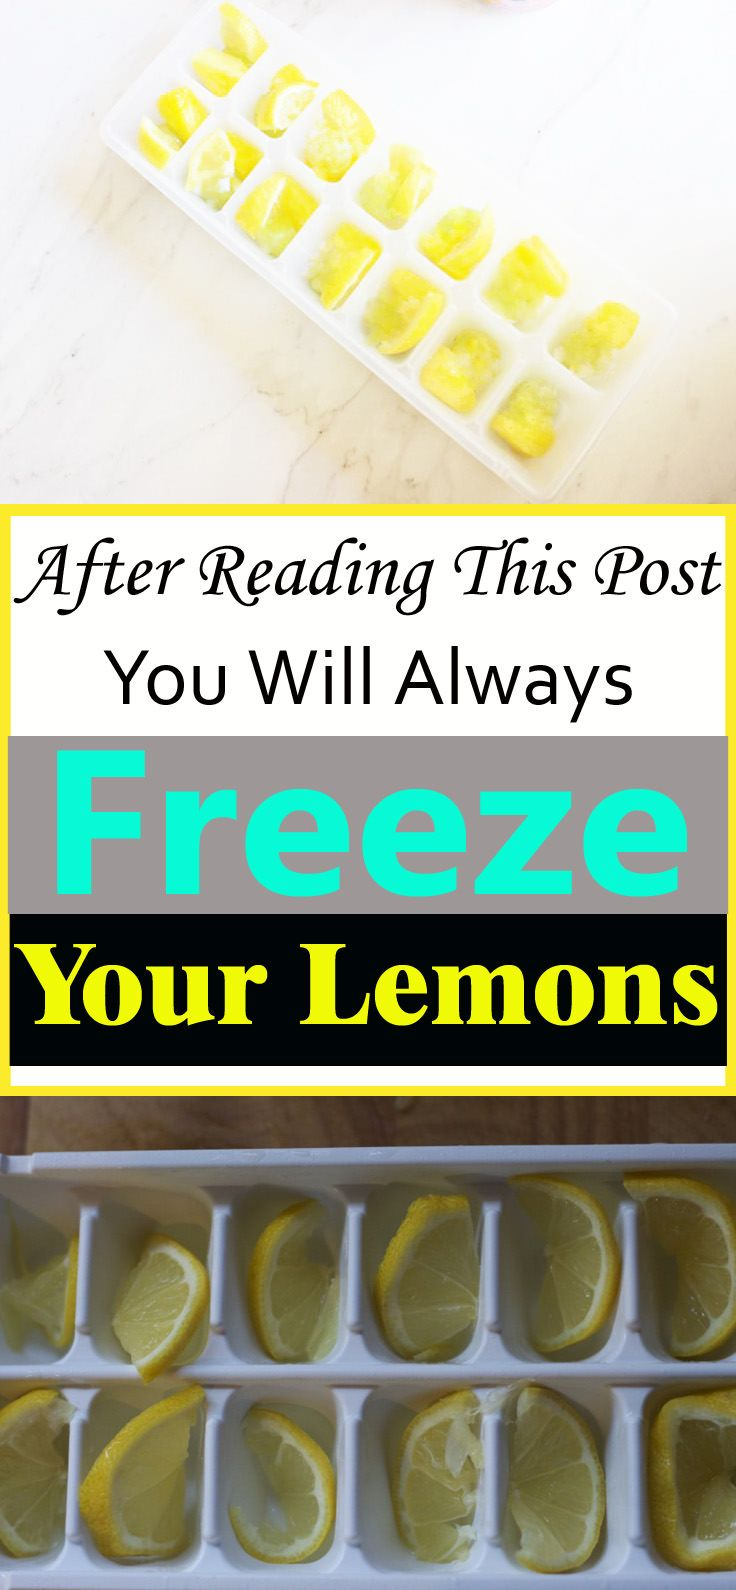 After Reading This Post, You Will Always Freeze Your Lemons